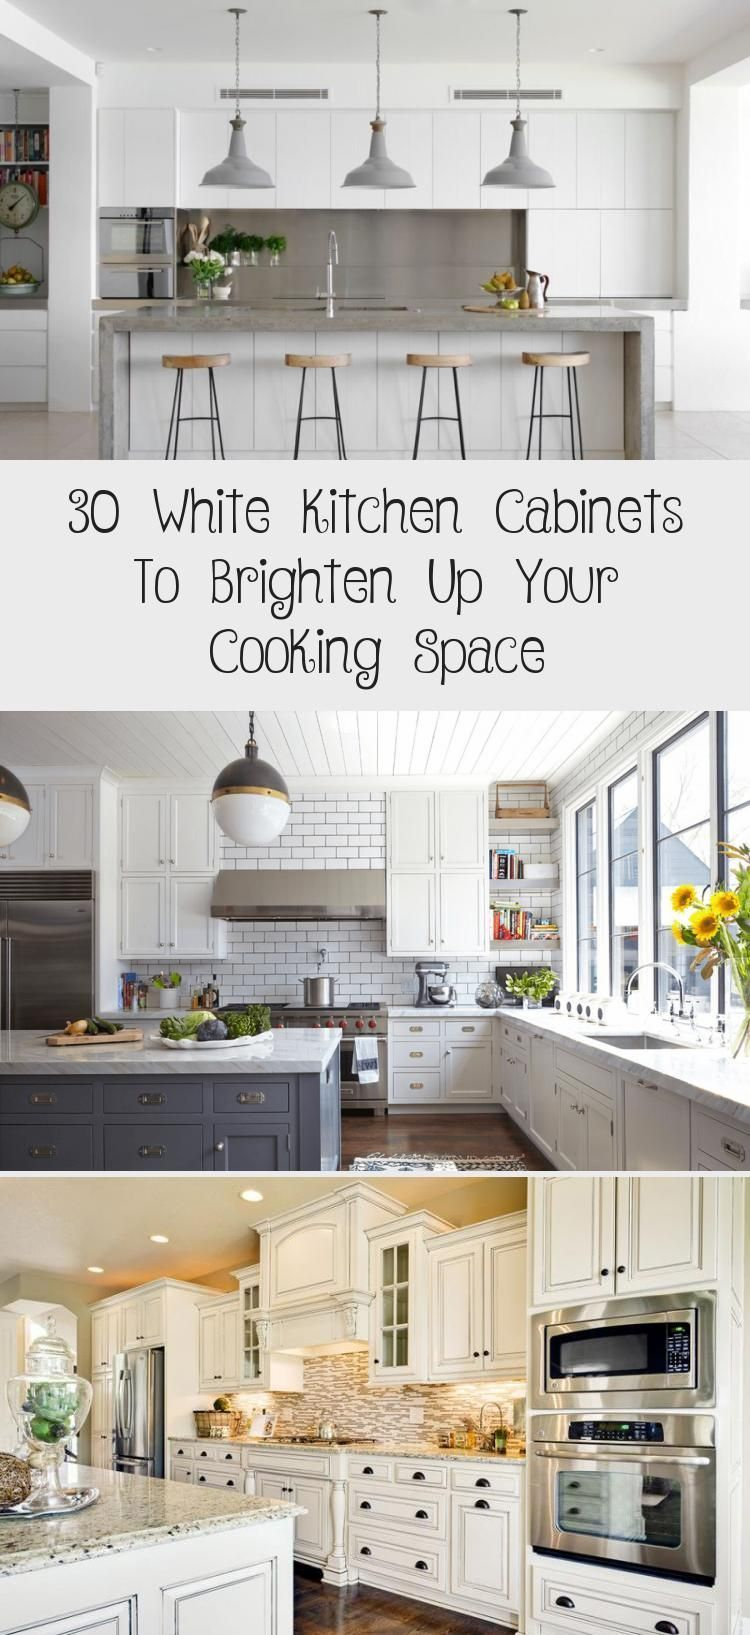 30 White Kitchen Cabinets To Illuminate Your Cooking Space Decorations Cabinets Cooking Decora White Kitchen Cabinets White Modern Kitchen Kitchen Cabinets White kitchen cabinet set